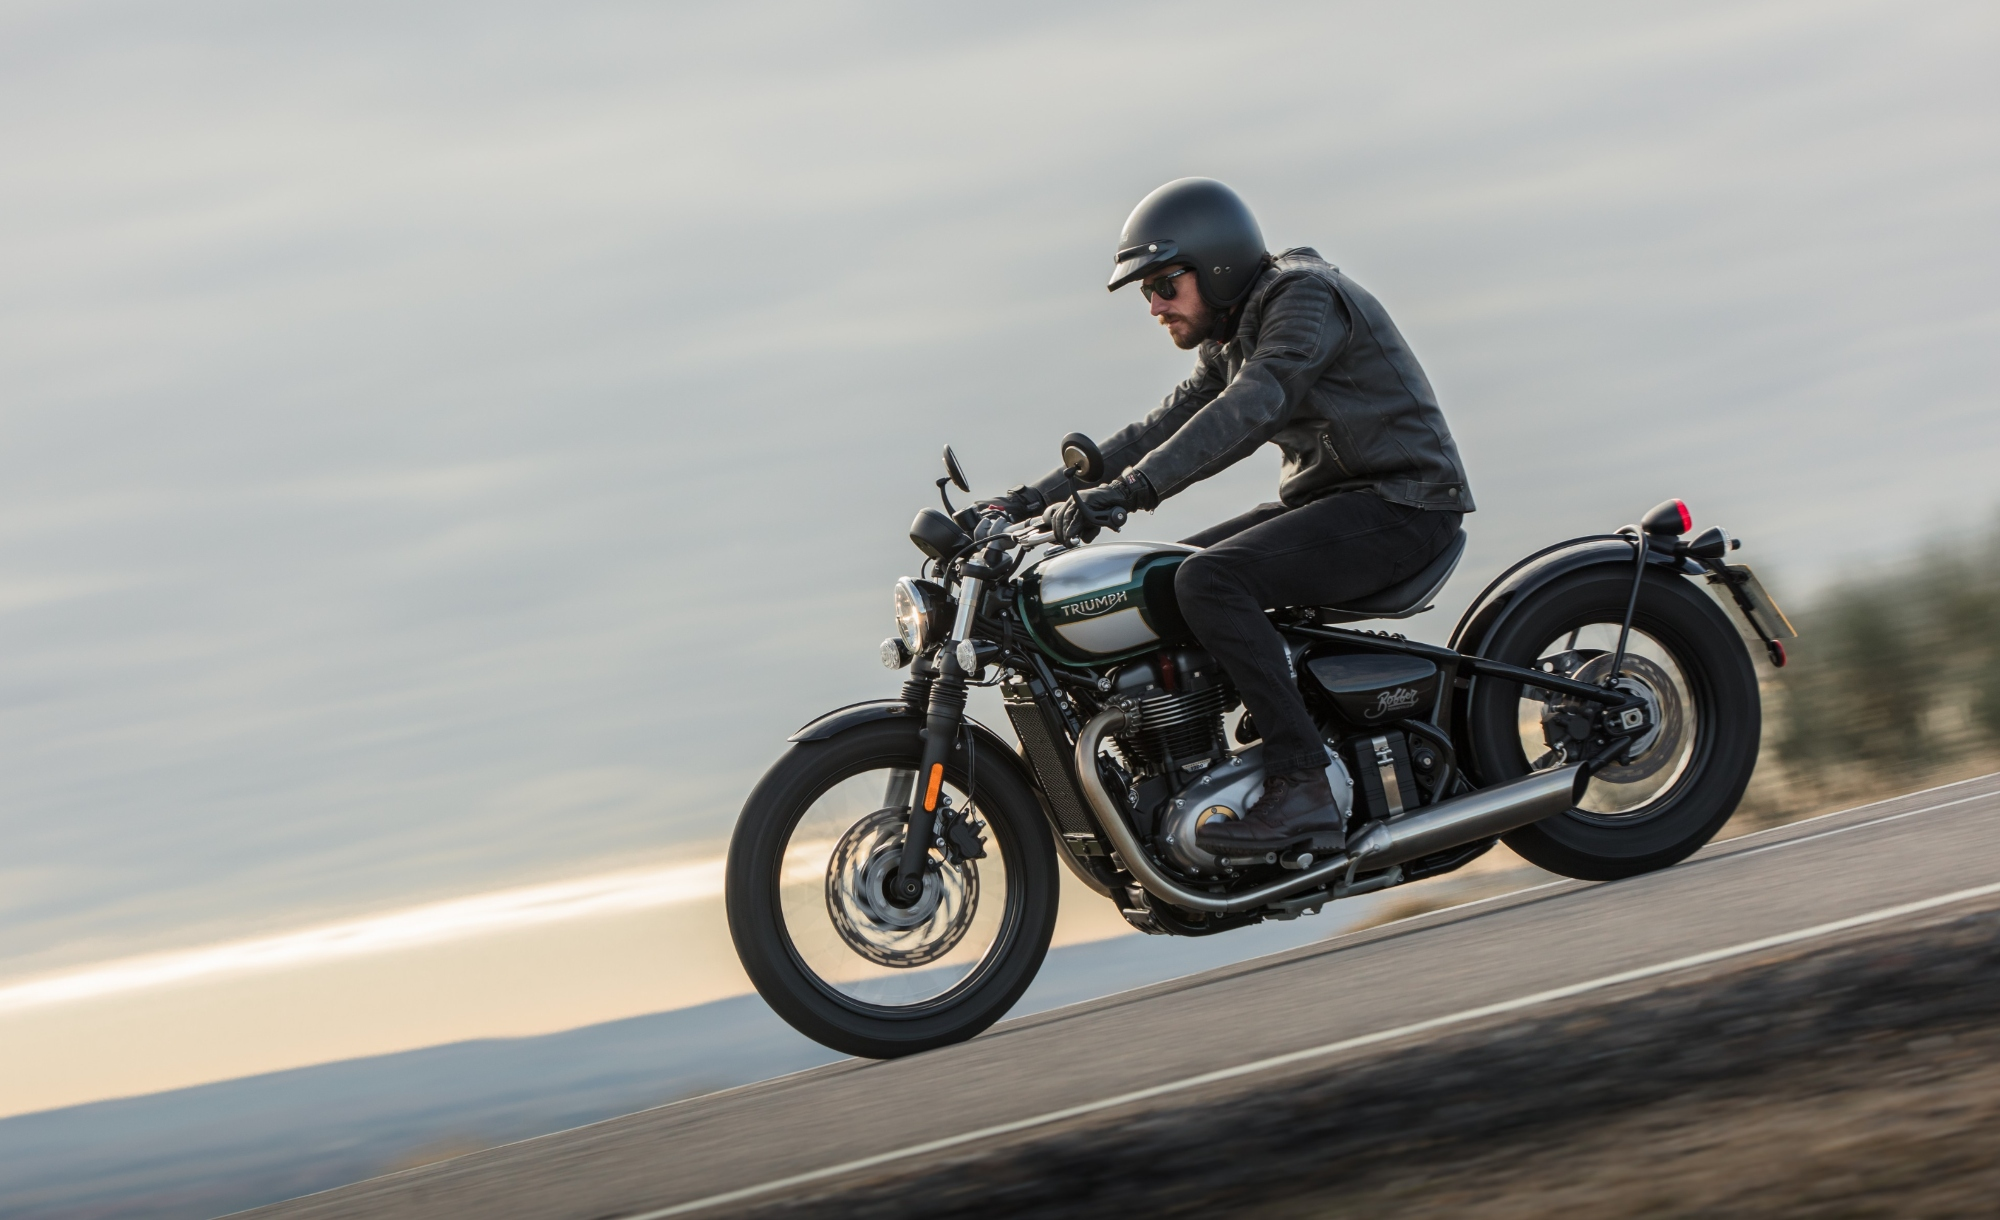 Grab Your Open Face Lid These Are The Top 10 Best Bobber Motorcycles Of 2020